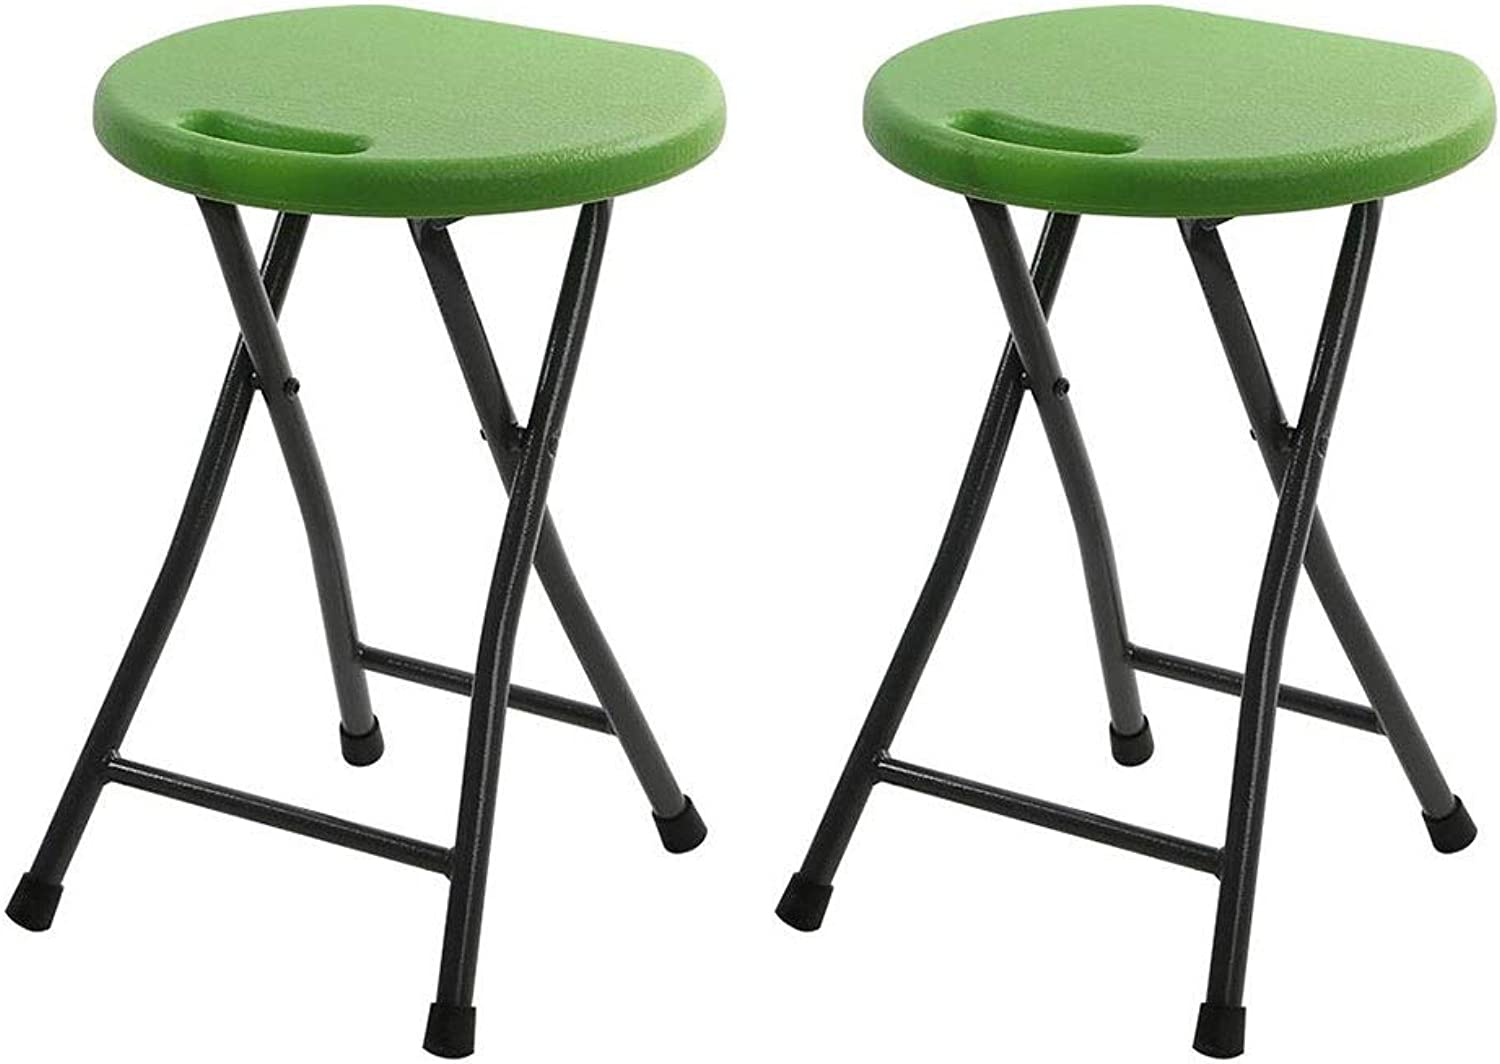 Dall Folding Stool High Chair Round Iron Tube Breakfast Kitchen Bar Stool Furniture Compact Pack-2 (color   Green1)